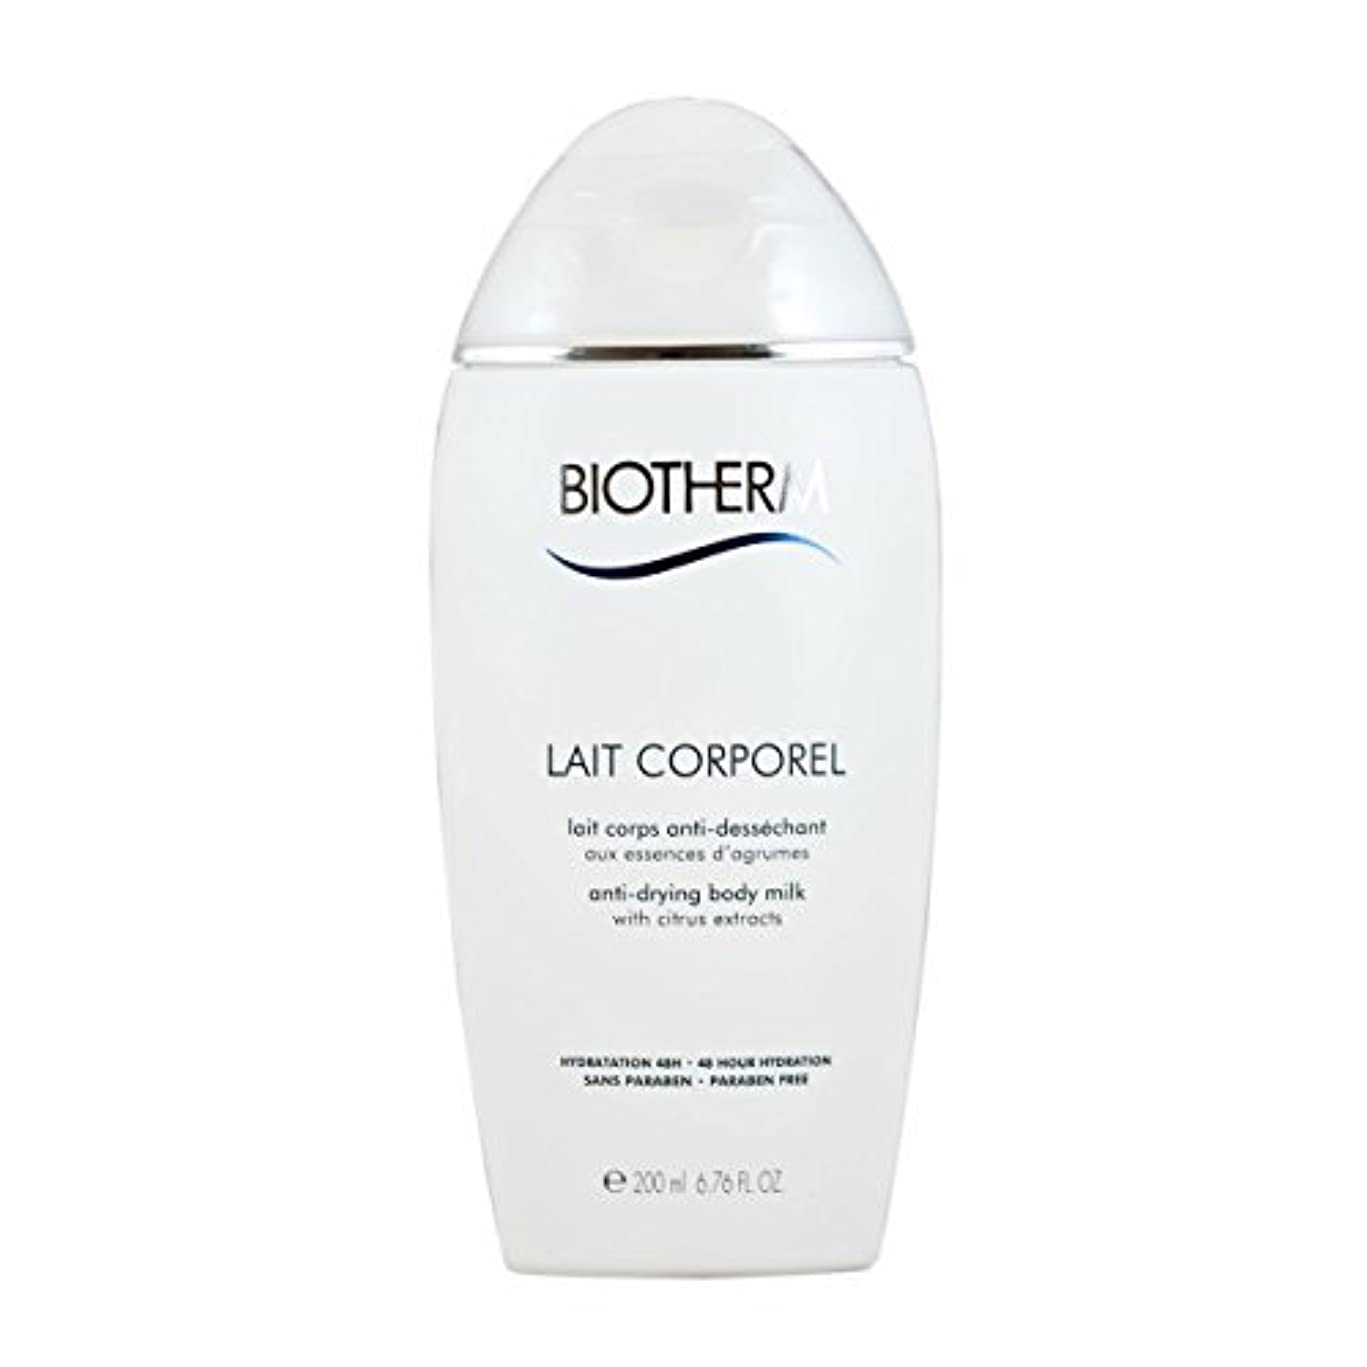 Biotherm Lait Corporel Anti-Drying Body Milk 6.76 Ounce [並行輸入品]